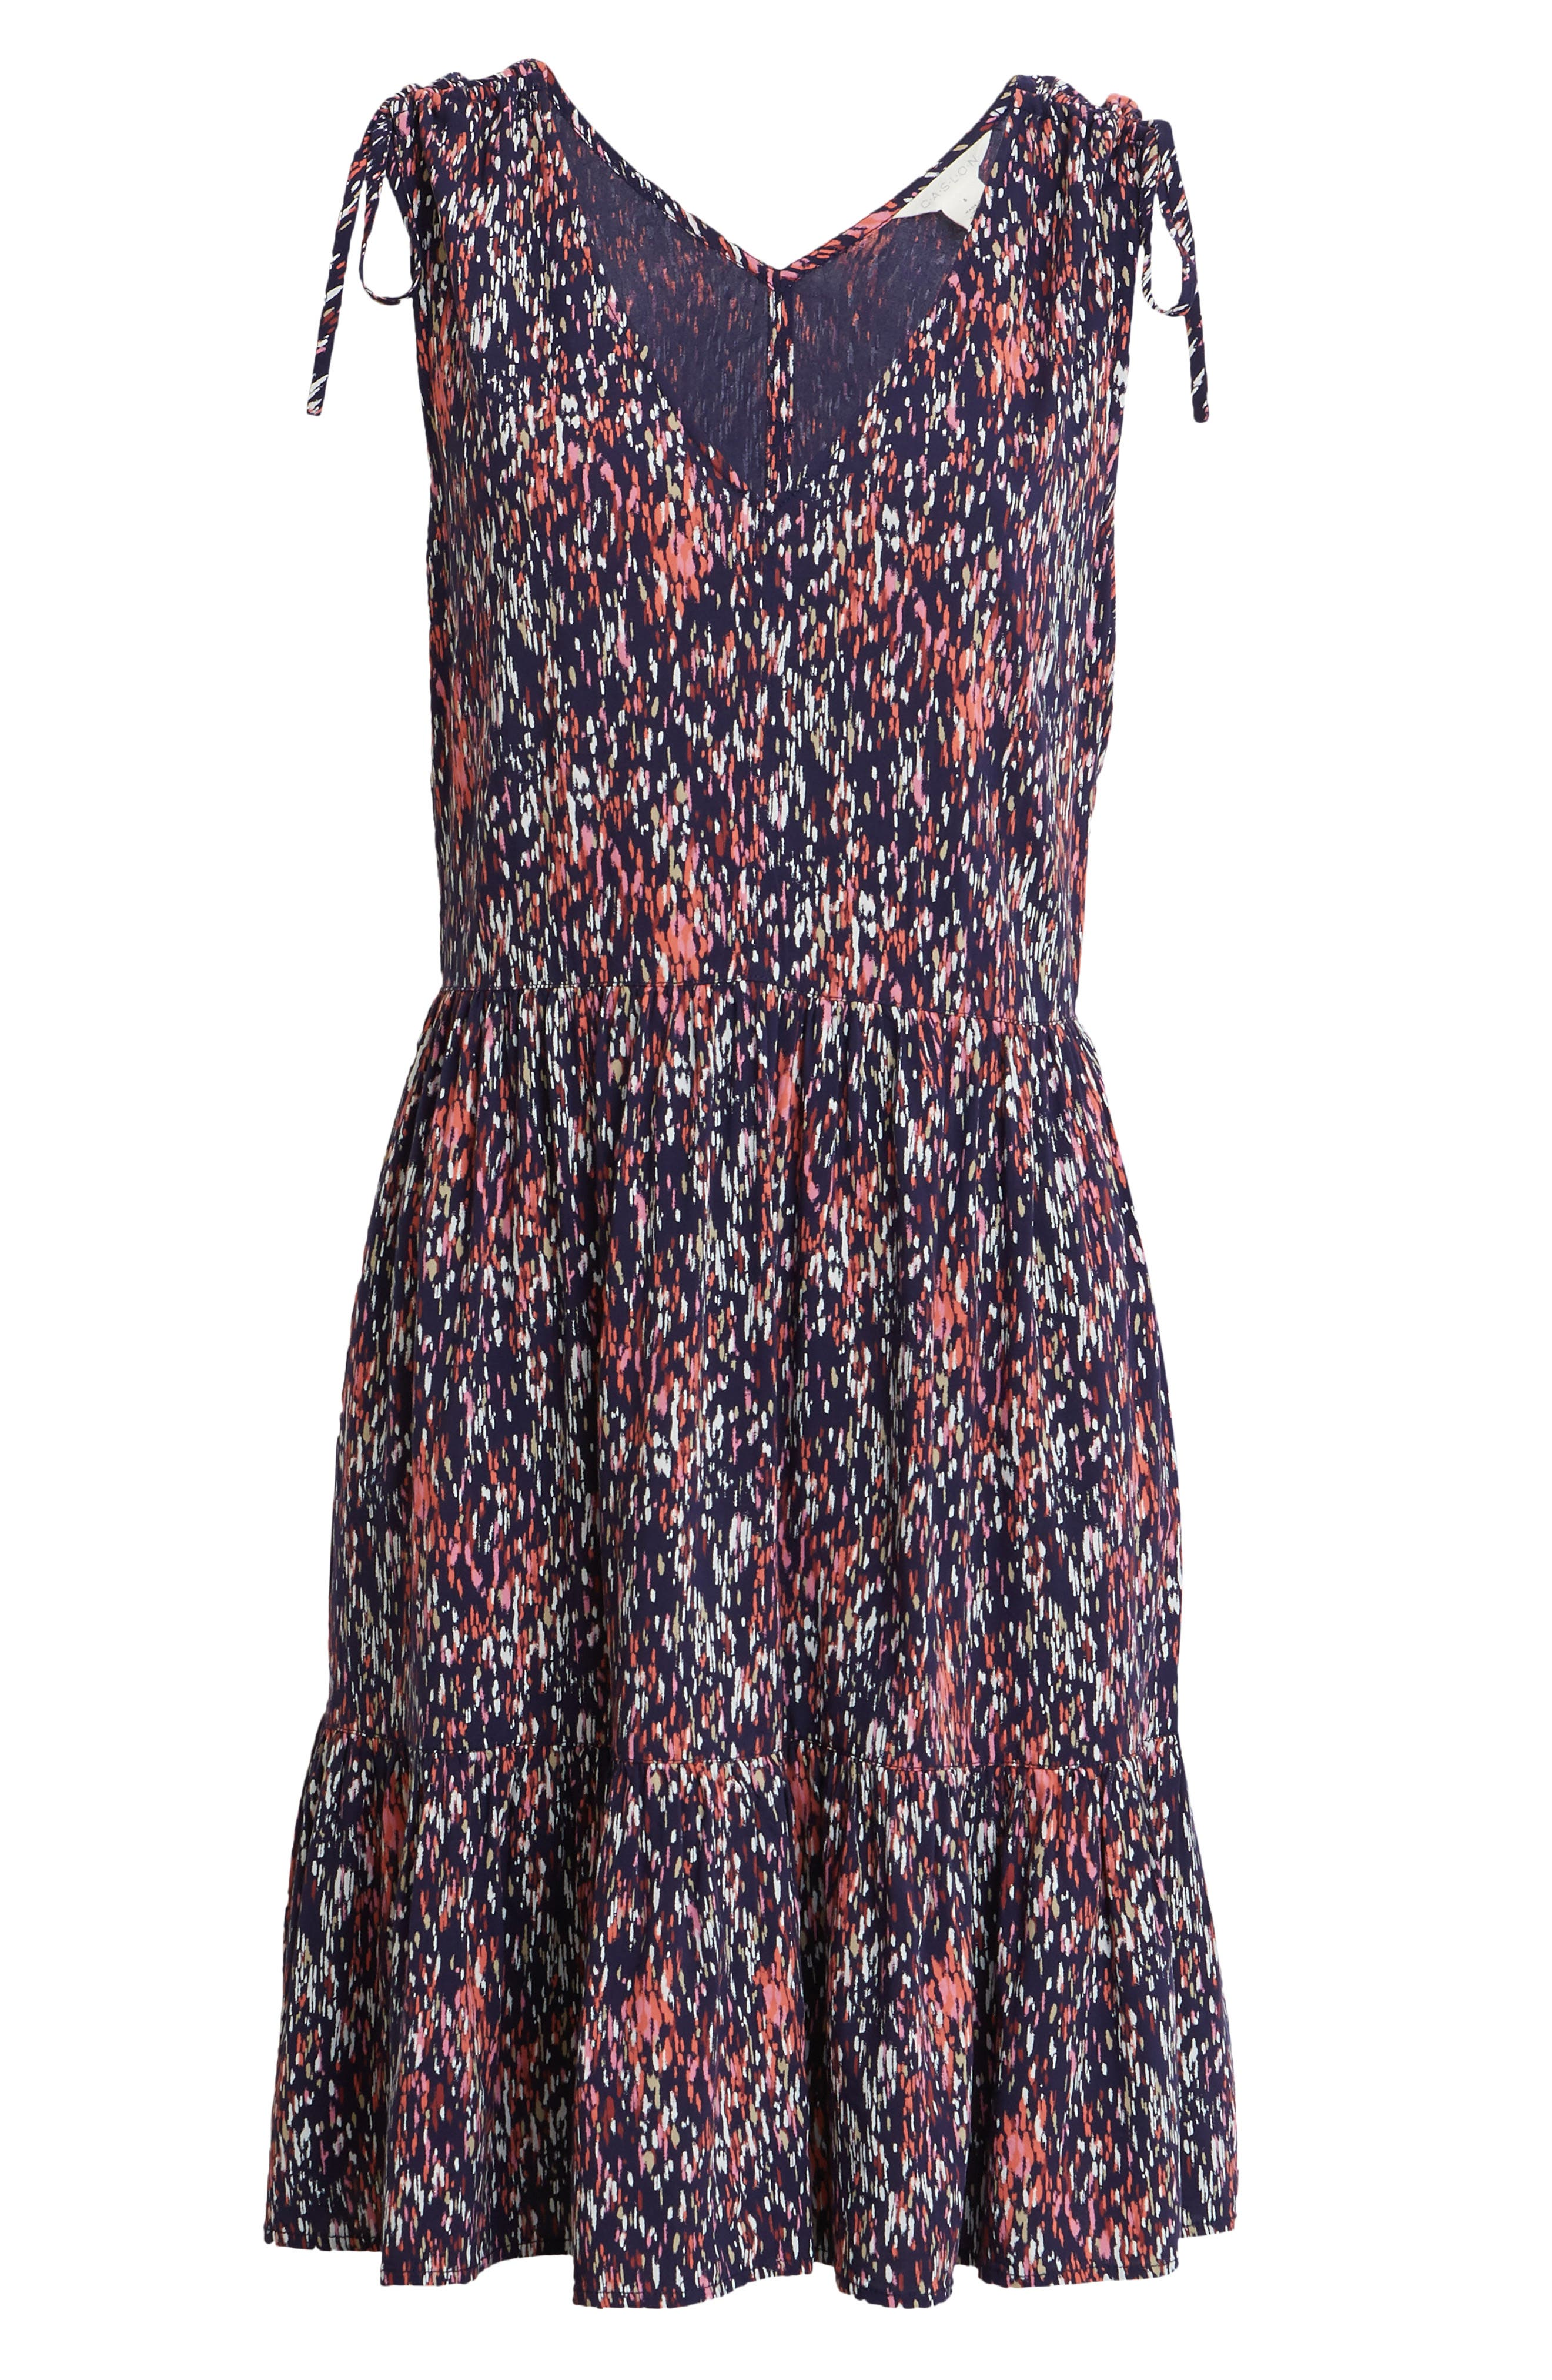 A simple seasonal favorite, this sleeveless frock is an easy slip-on-and-go choice for warmer days with its flowy skirt and drawstring-ruched shoulders. Style Name: Caslon Print Ruched Shoulder Dress. Style Number: 5985726. Available in stores.